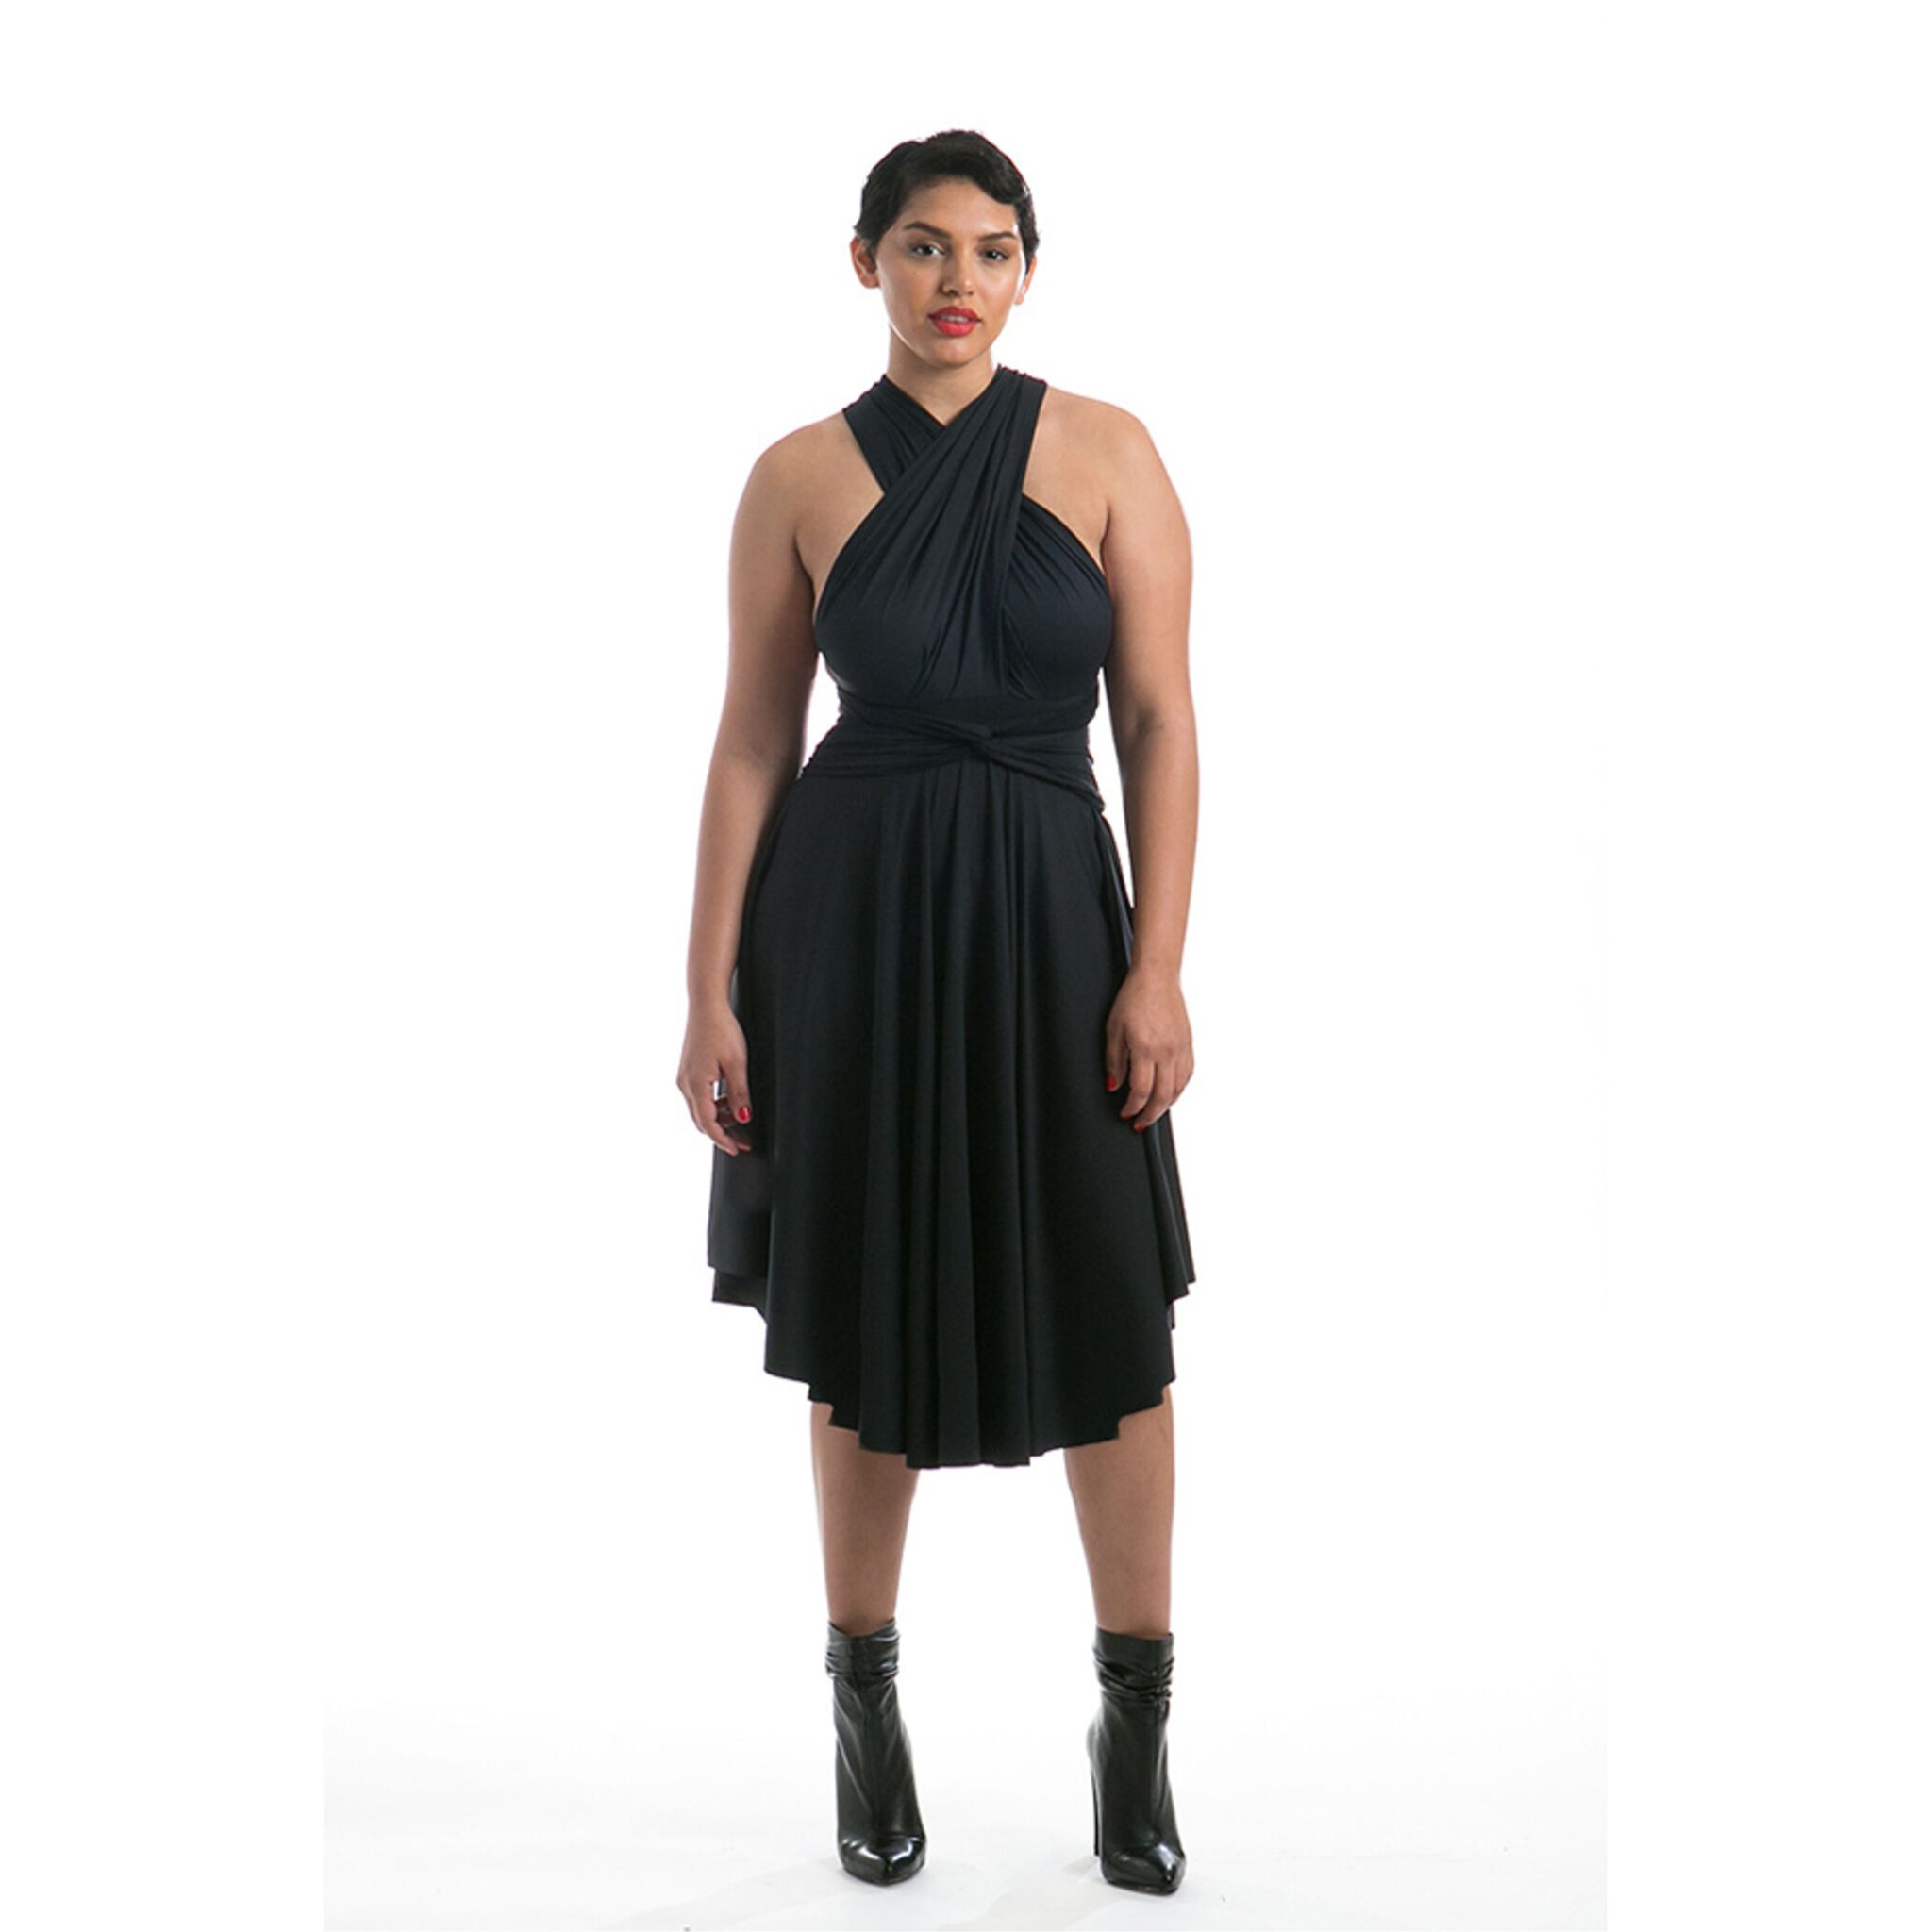 The EveryBody Wrap® Dress